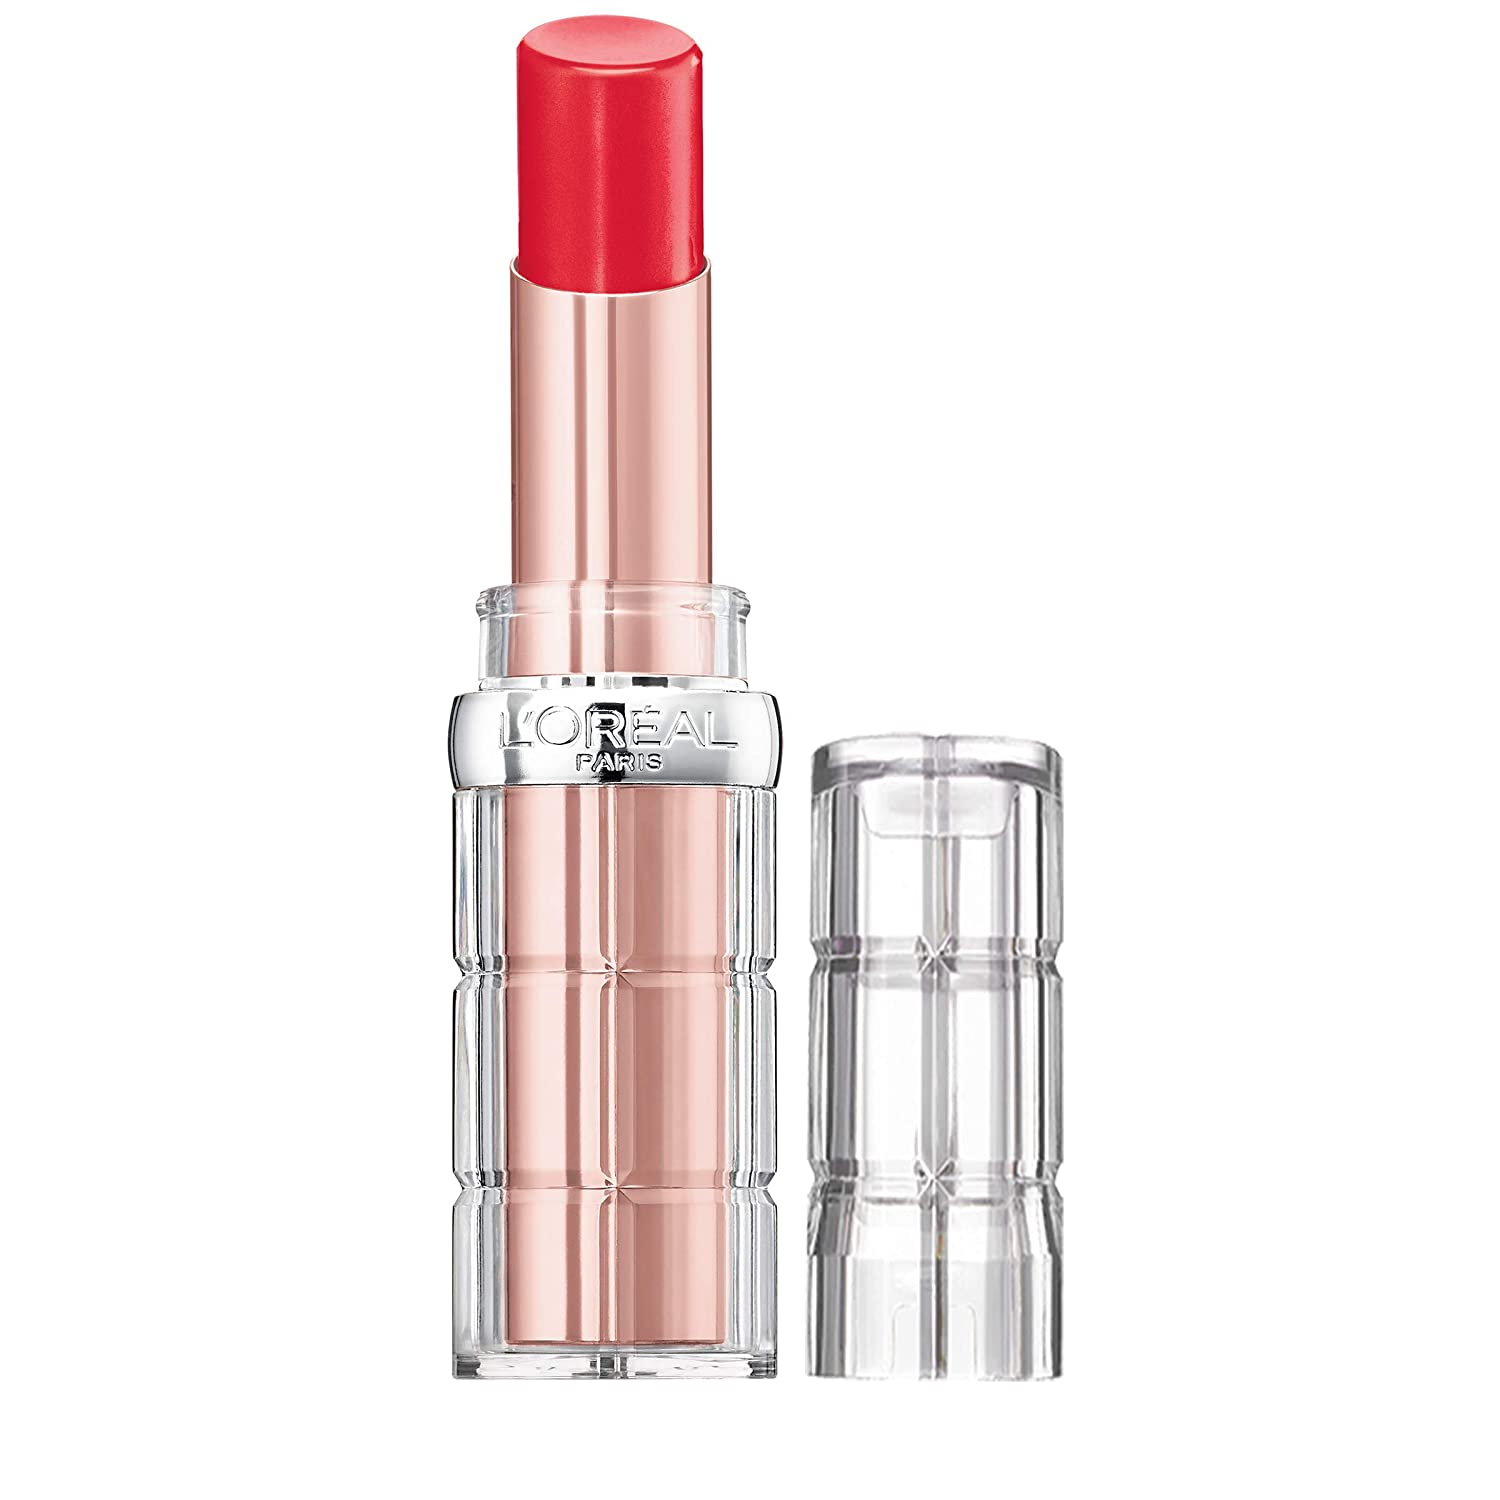 L'Oreal Paris Makeup Colour Riche Plump & Shine Lipstick, for Glossy, Radiant, Visibly Fuller Lips with an All-Day Moisturized Feel, Watermelon Plump, 0.1 oz.